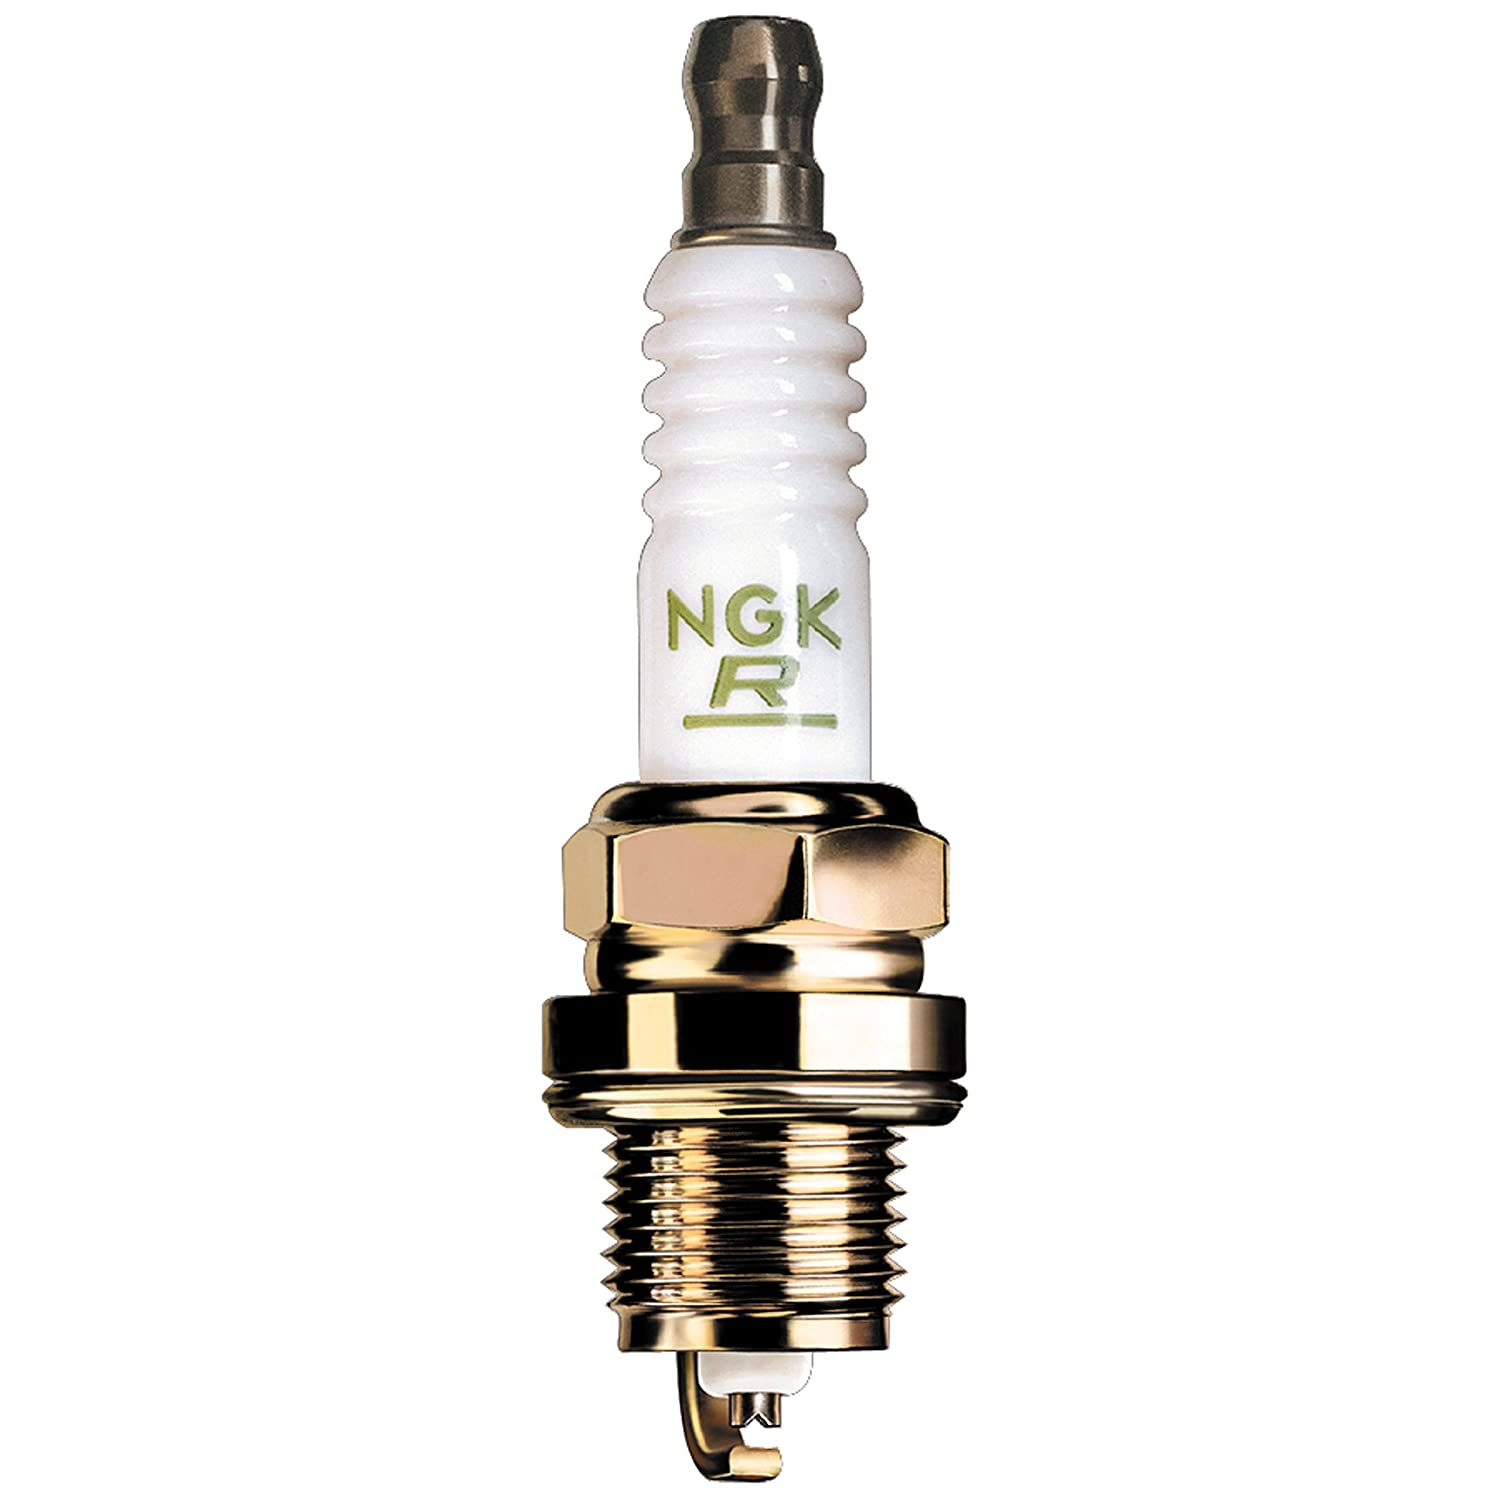 Amazon.com: NGK (2622) BUHW Tungsten Electrode Spark Plug, Pack of 1:  Automotive